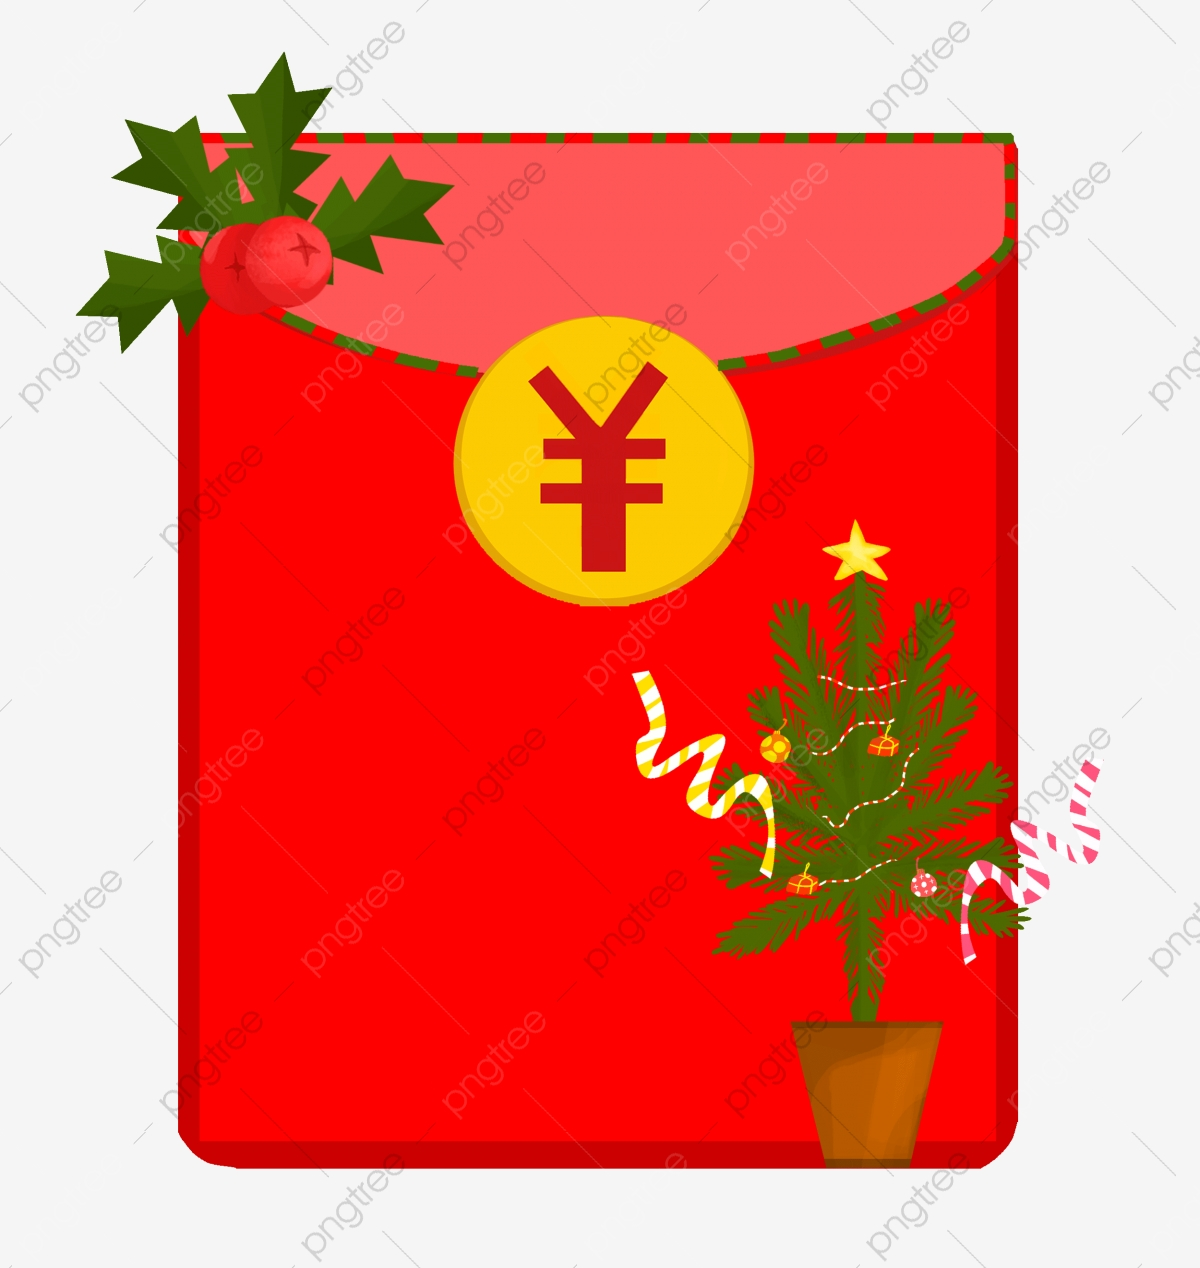 Hand Drawn Red Envelope Illustration Green Christmas Tree